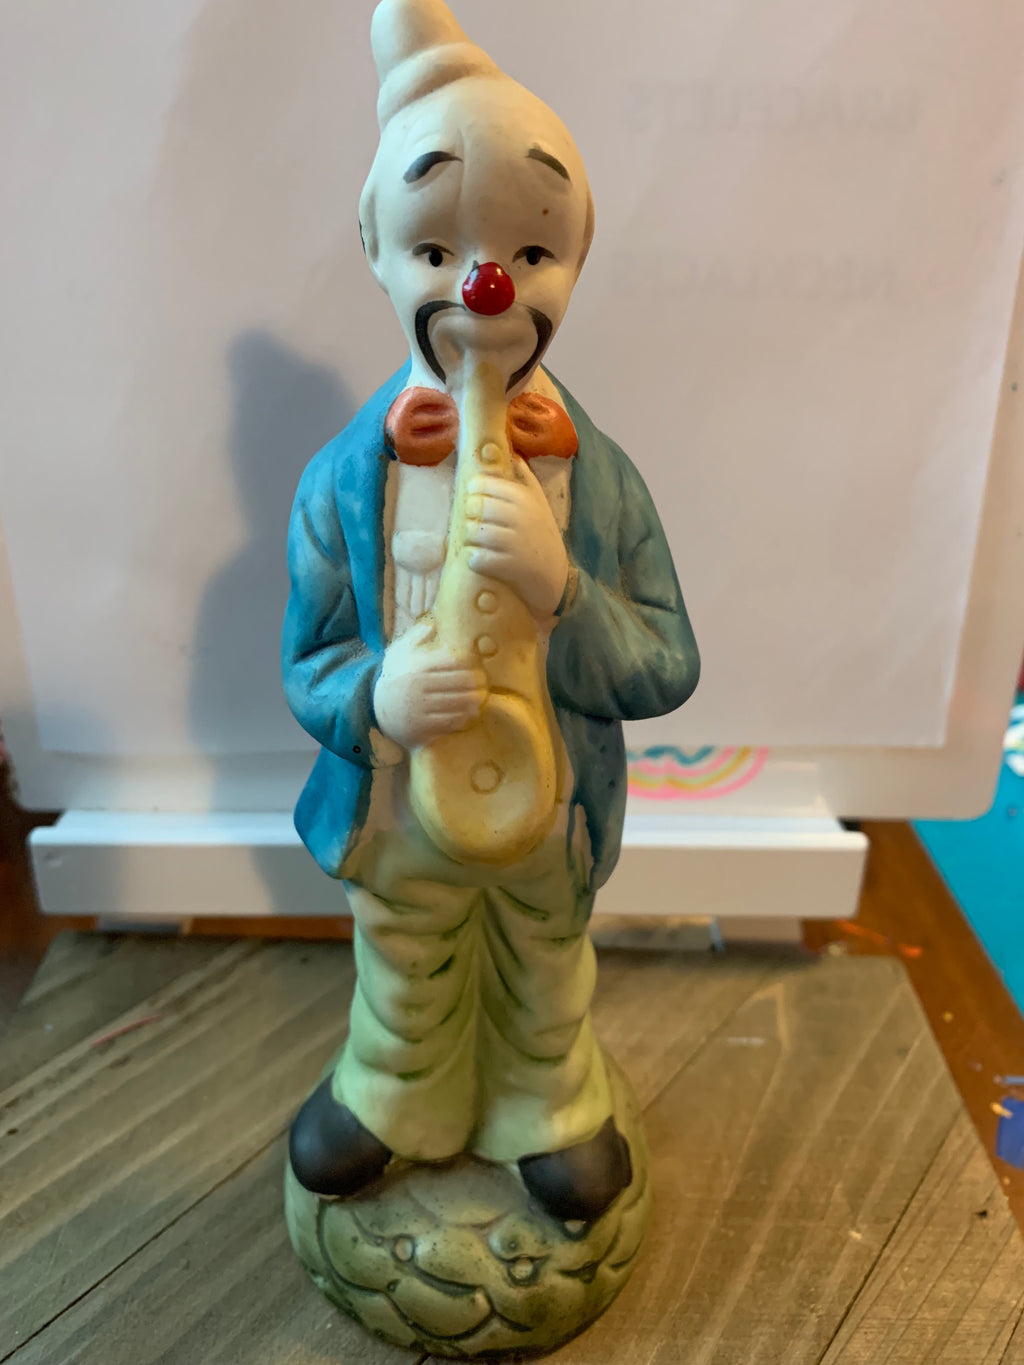 Clown--Ceramic, hand painted playing the Saxaphone